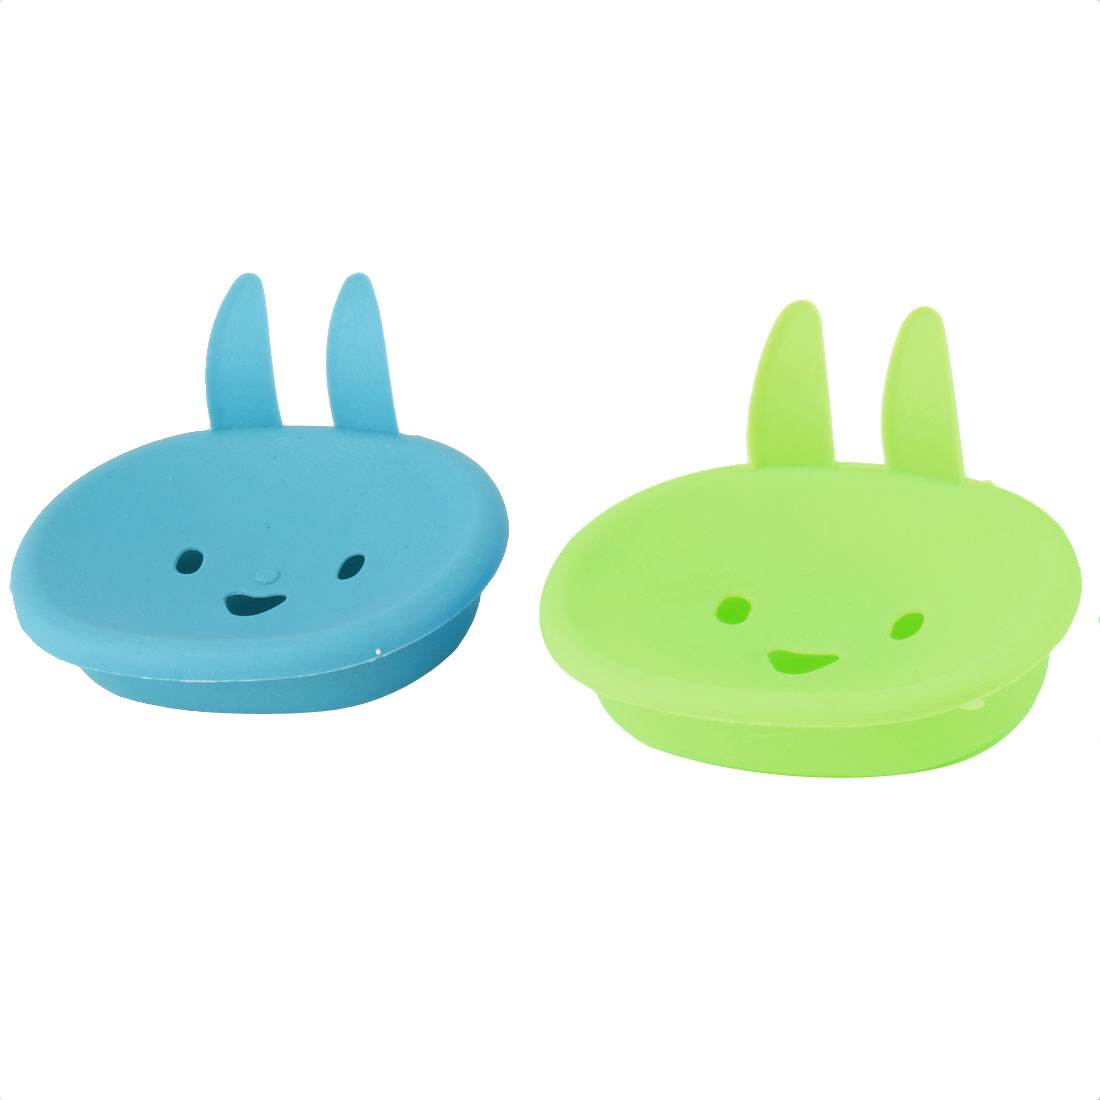 Bathroom Plastic Bunny Face Shape Soap Container Holder Case Box Blue Green 2pcs